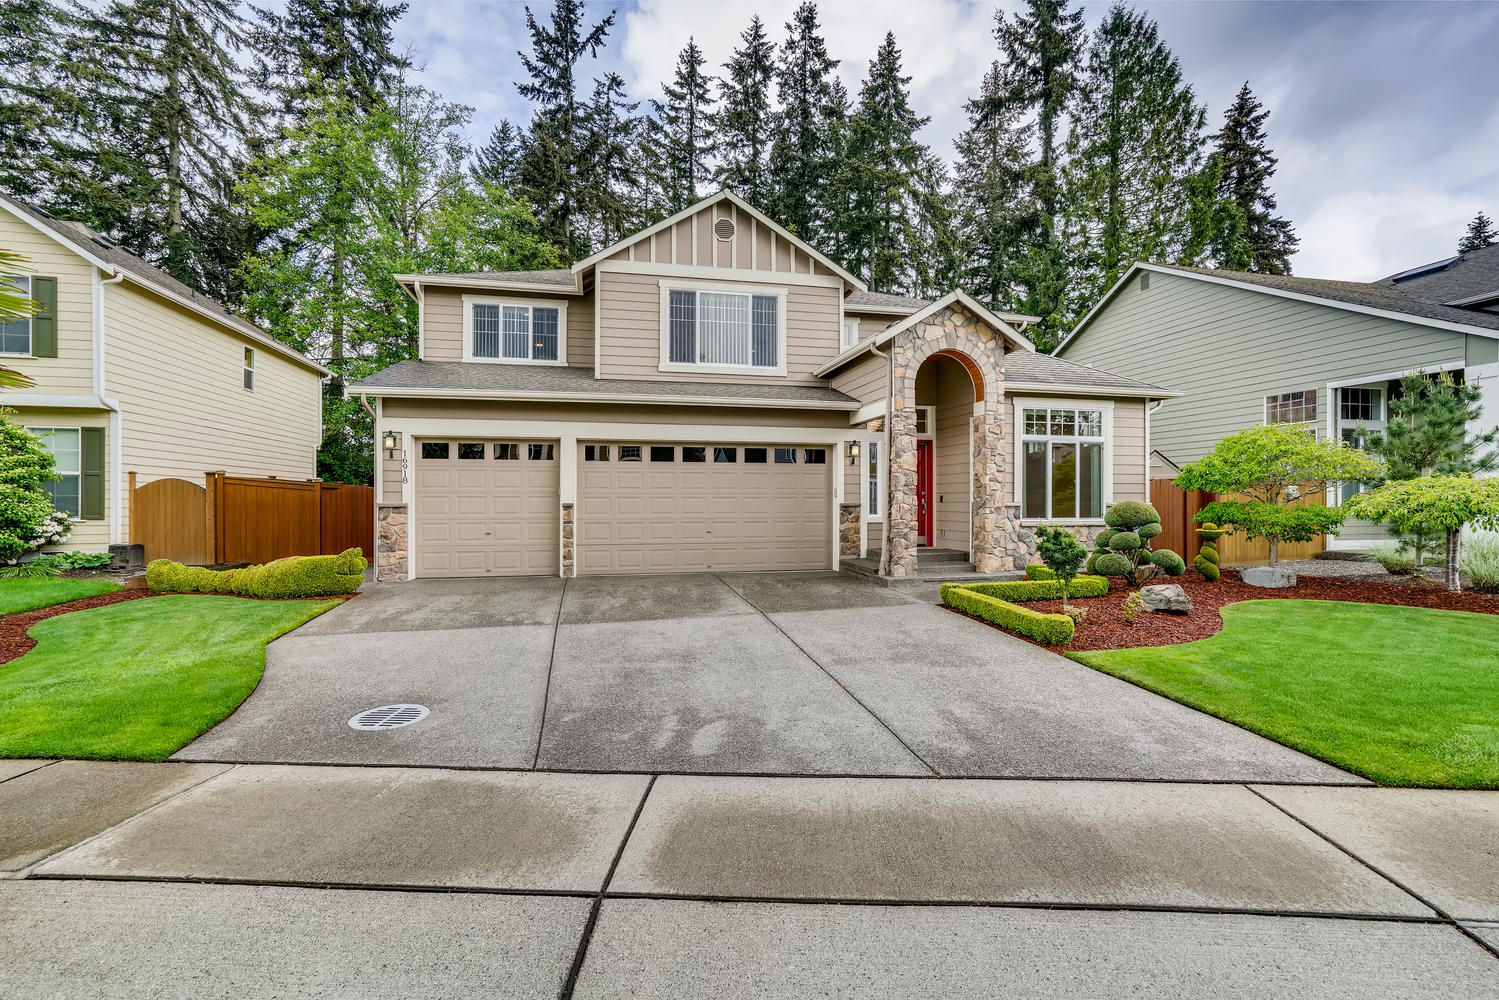 Single Family Homes for Sale at 16918 31st Drive Southeast, Bothell, WA 98012 Bothell, Washington 98012 United States